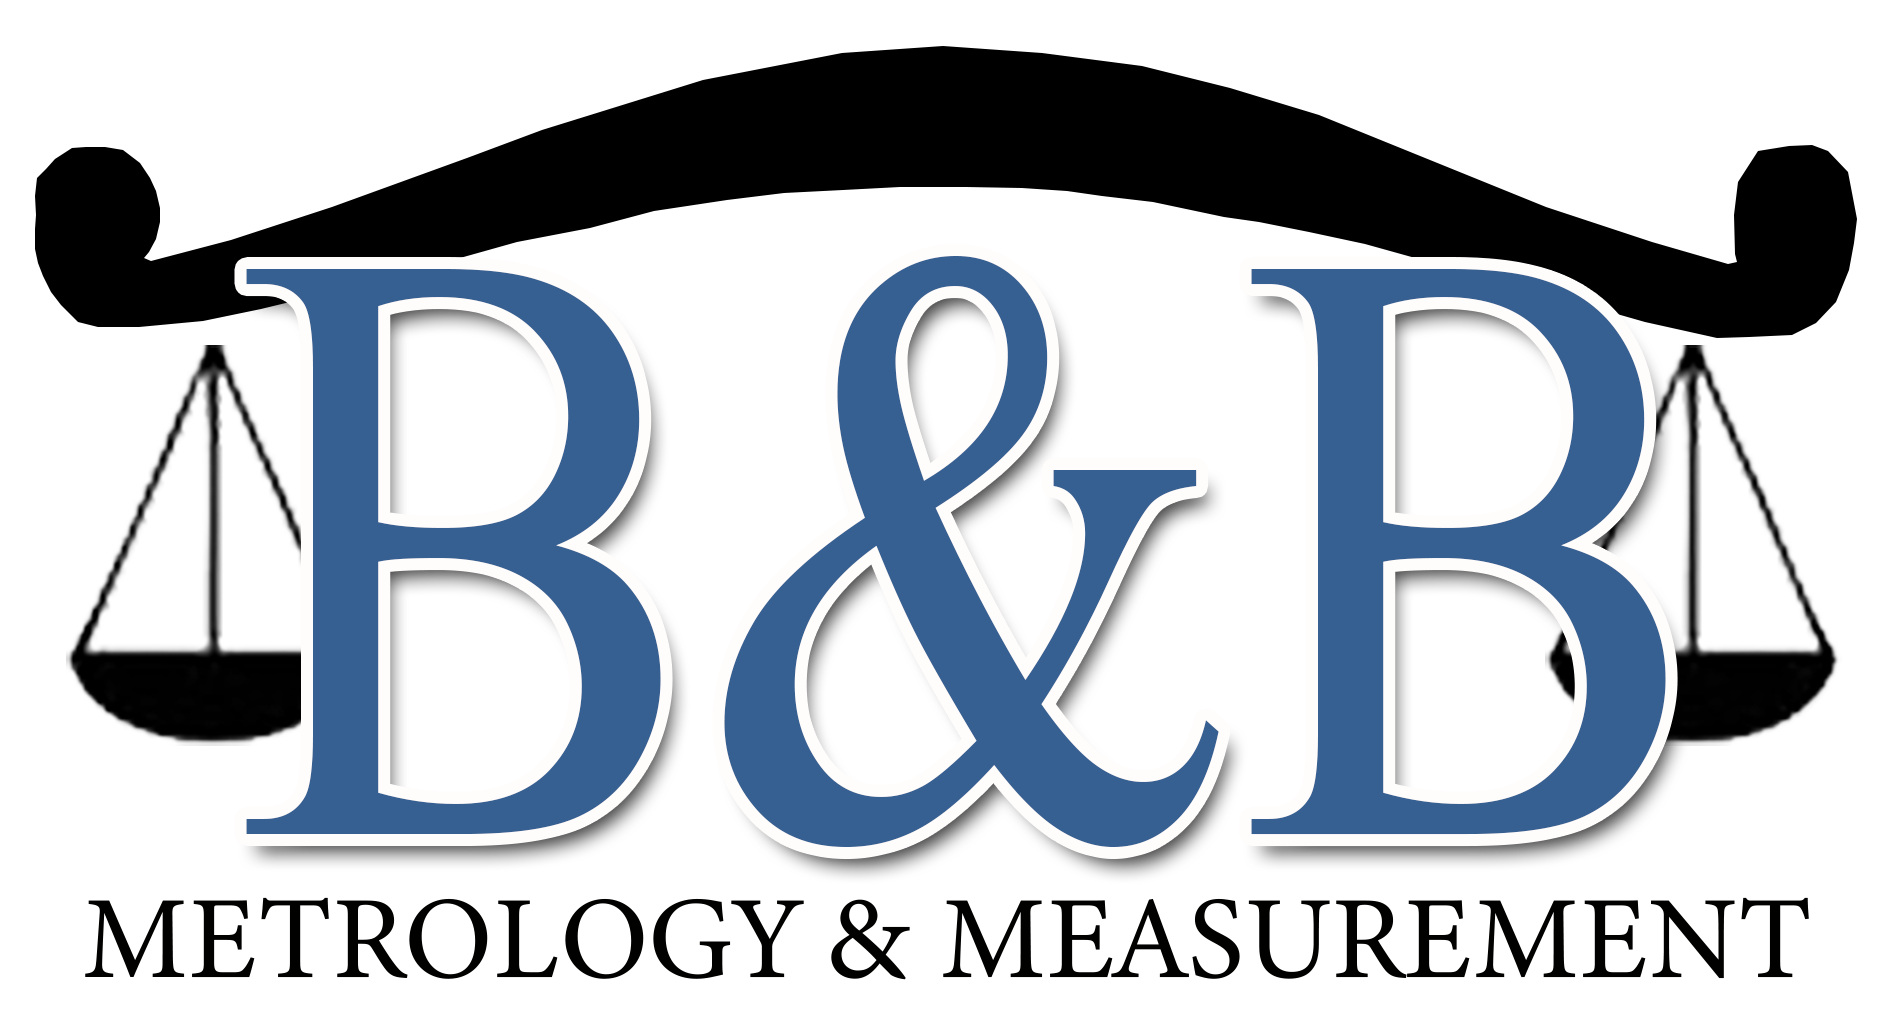 B and B Scales Inc.